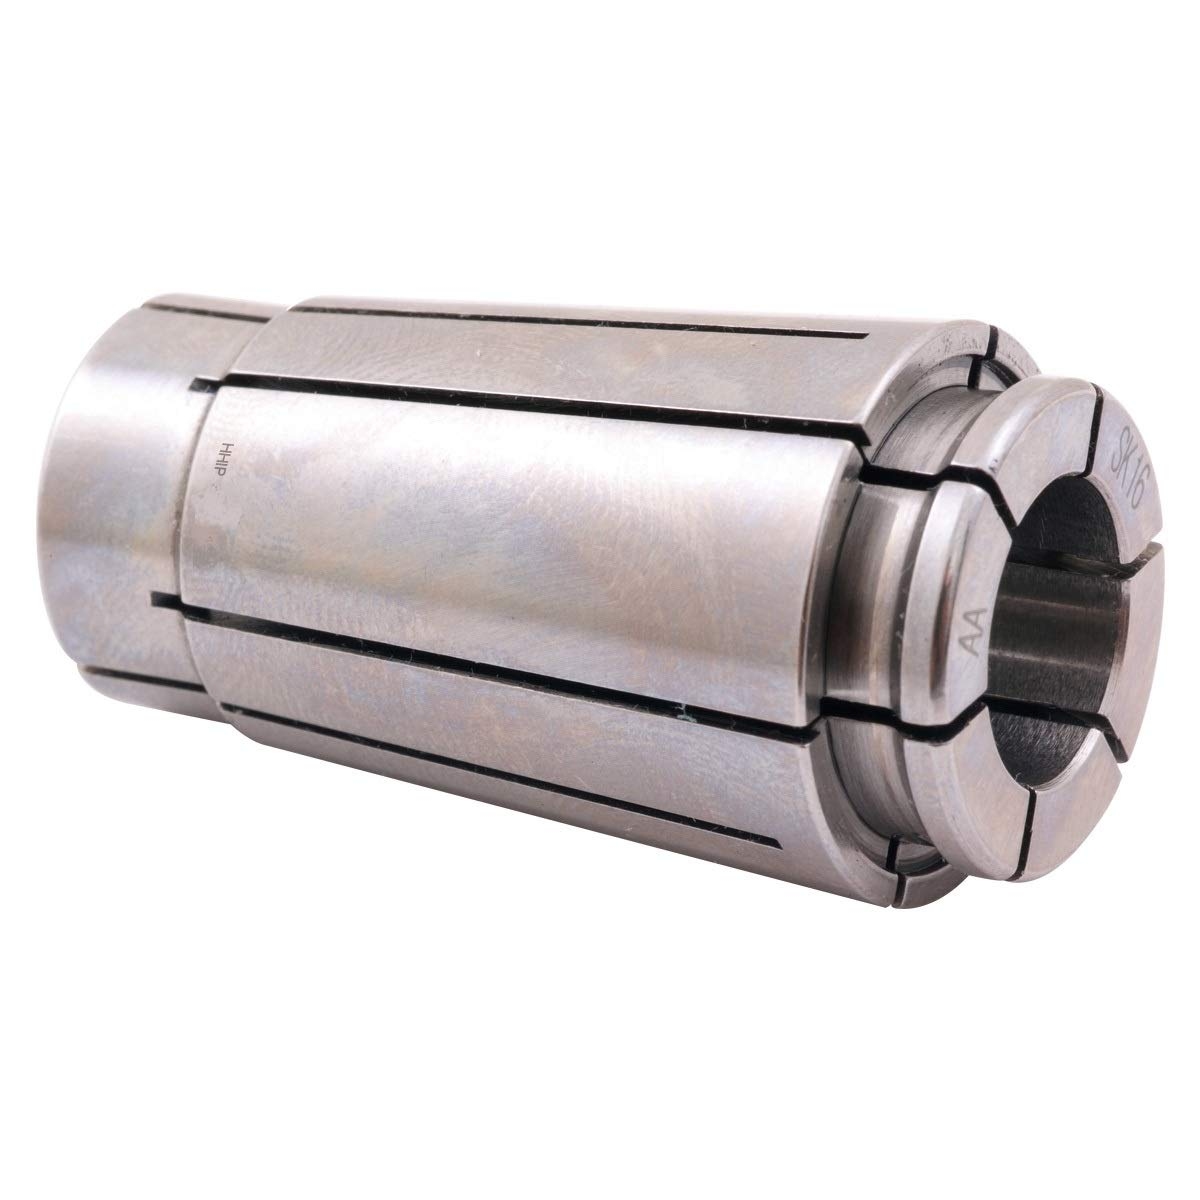 HHIP 3901-5464 Pro-Series Sk16 Lyndex Style Collet, 5/8